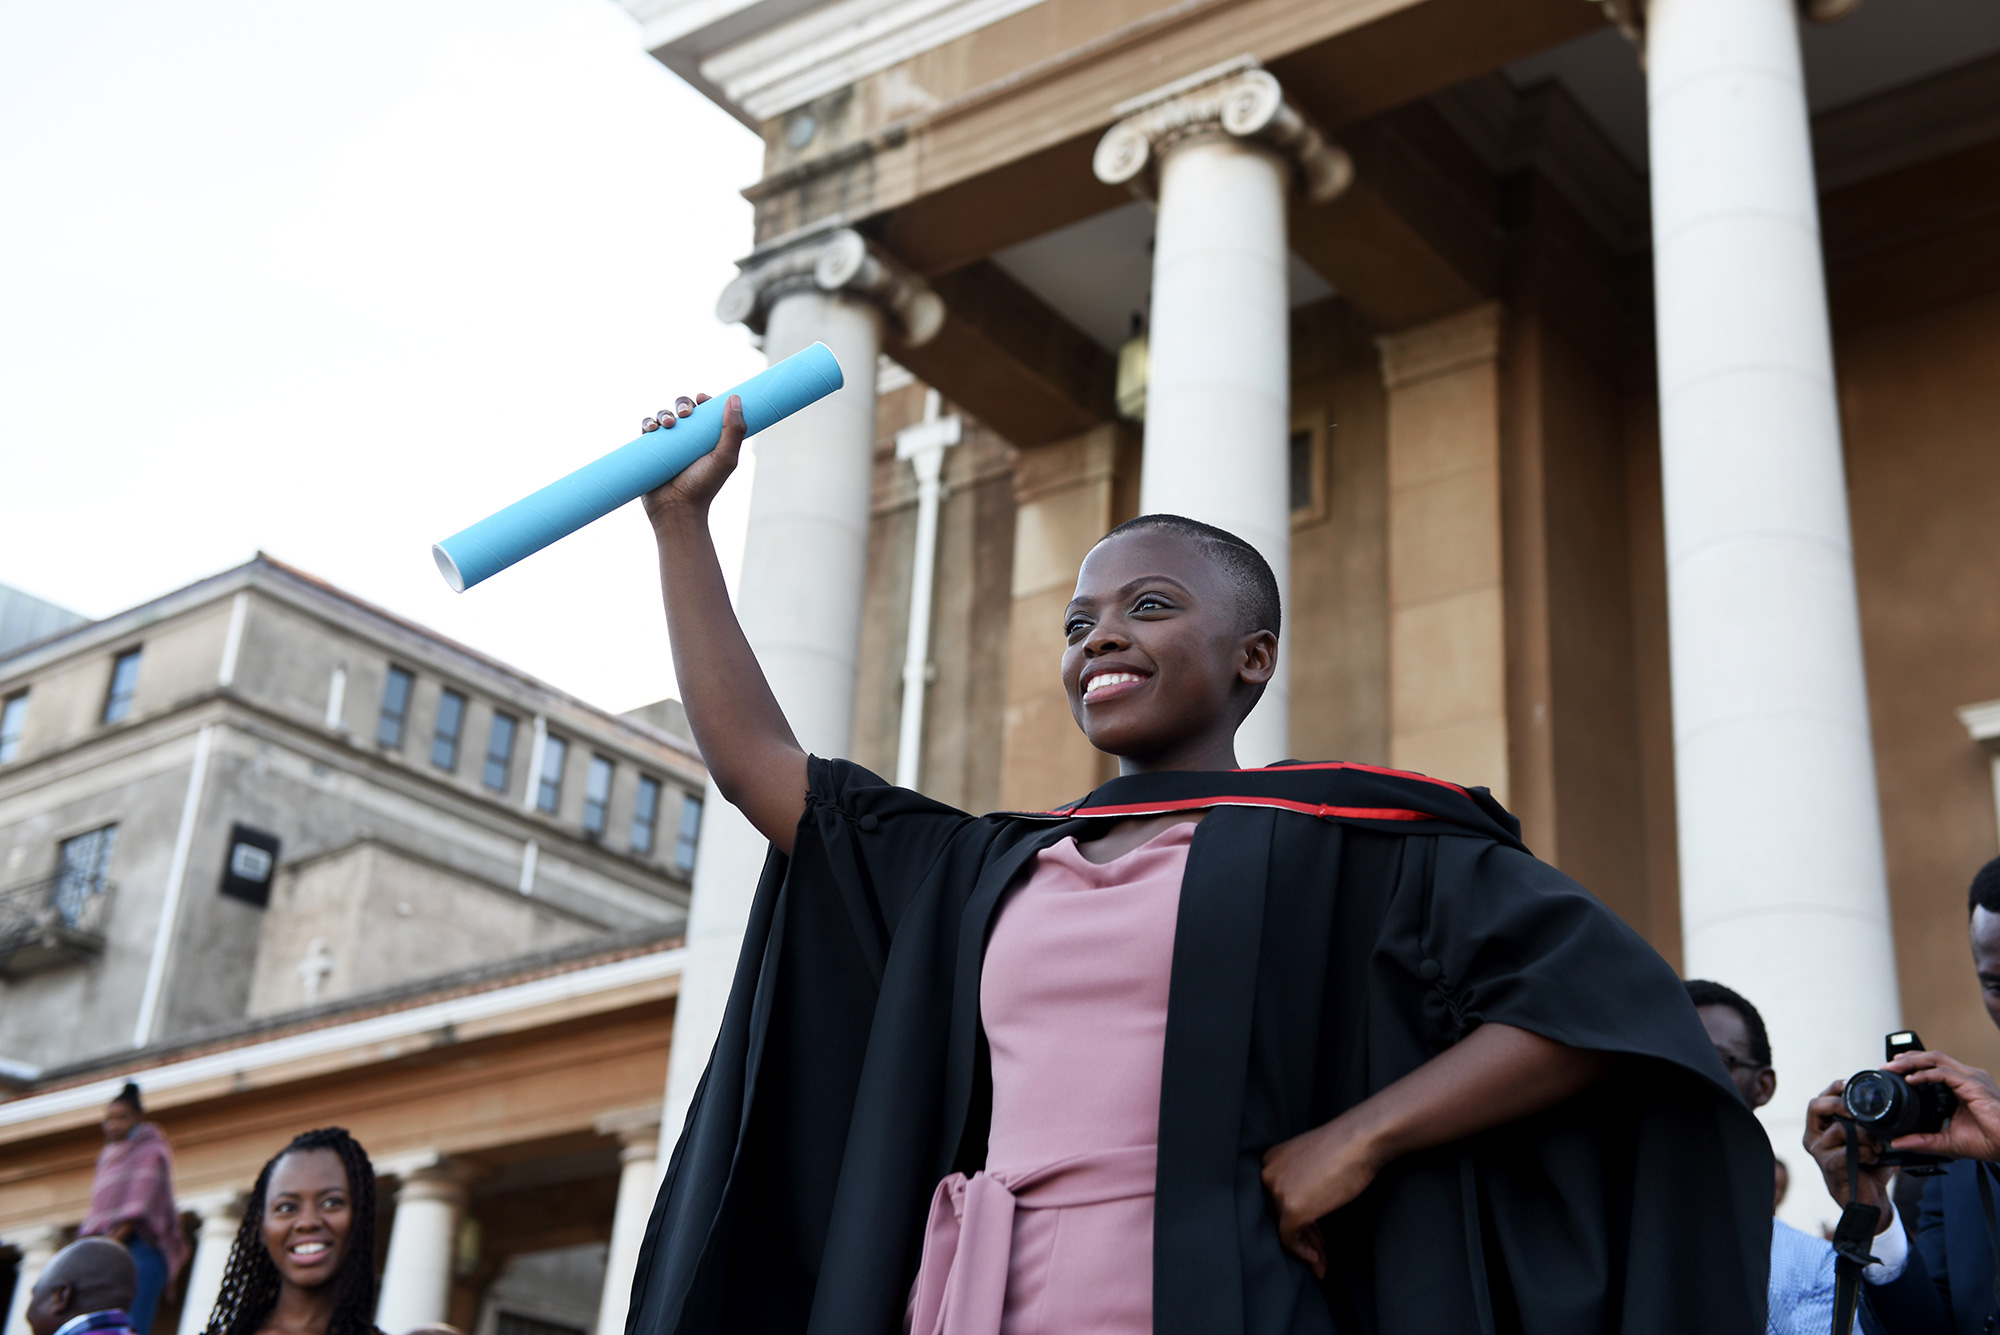 uct graduates ready for the world of work